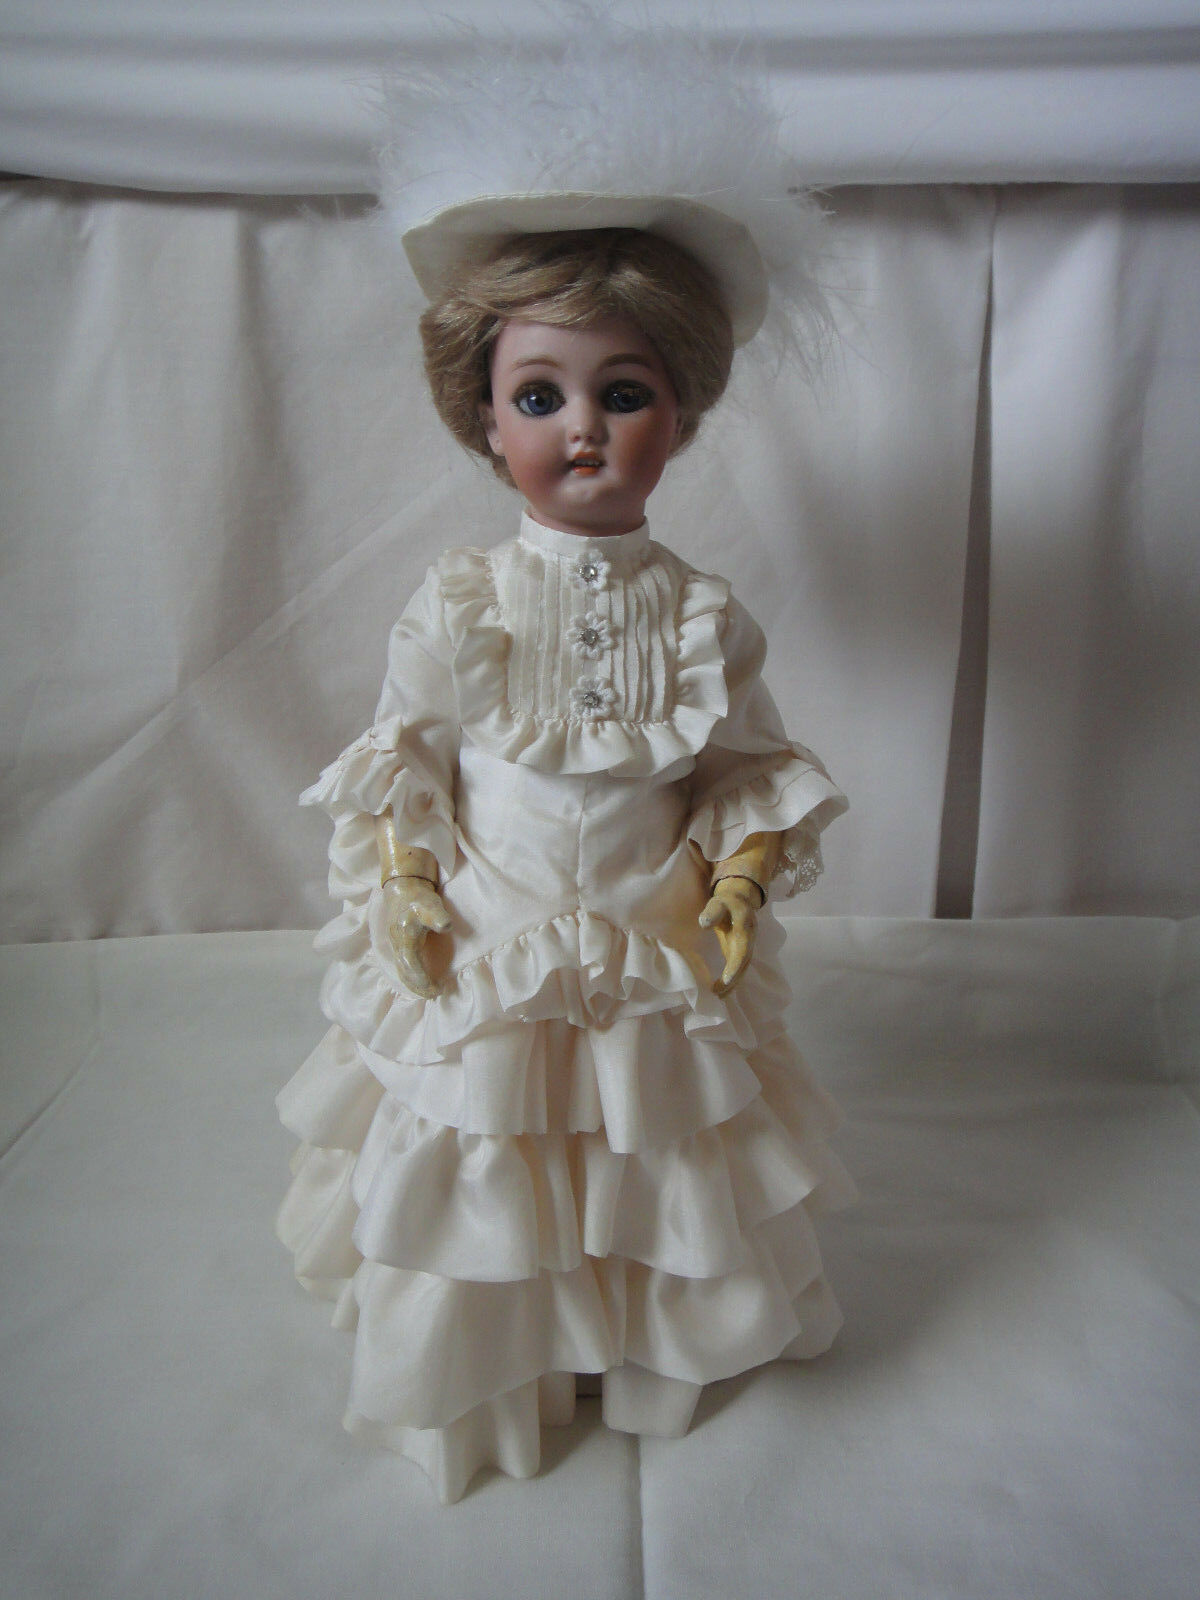 SIMON and HALBIG - WALKING DOLL 13 ½   Antique German Doll Circa - late 1890's.